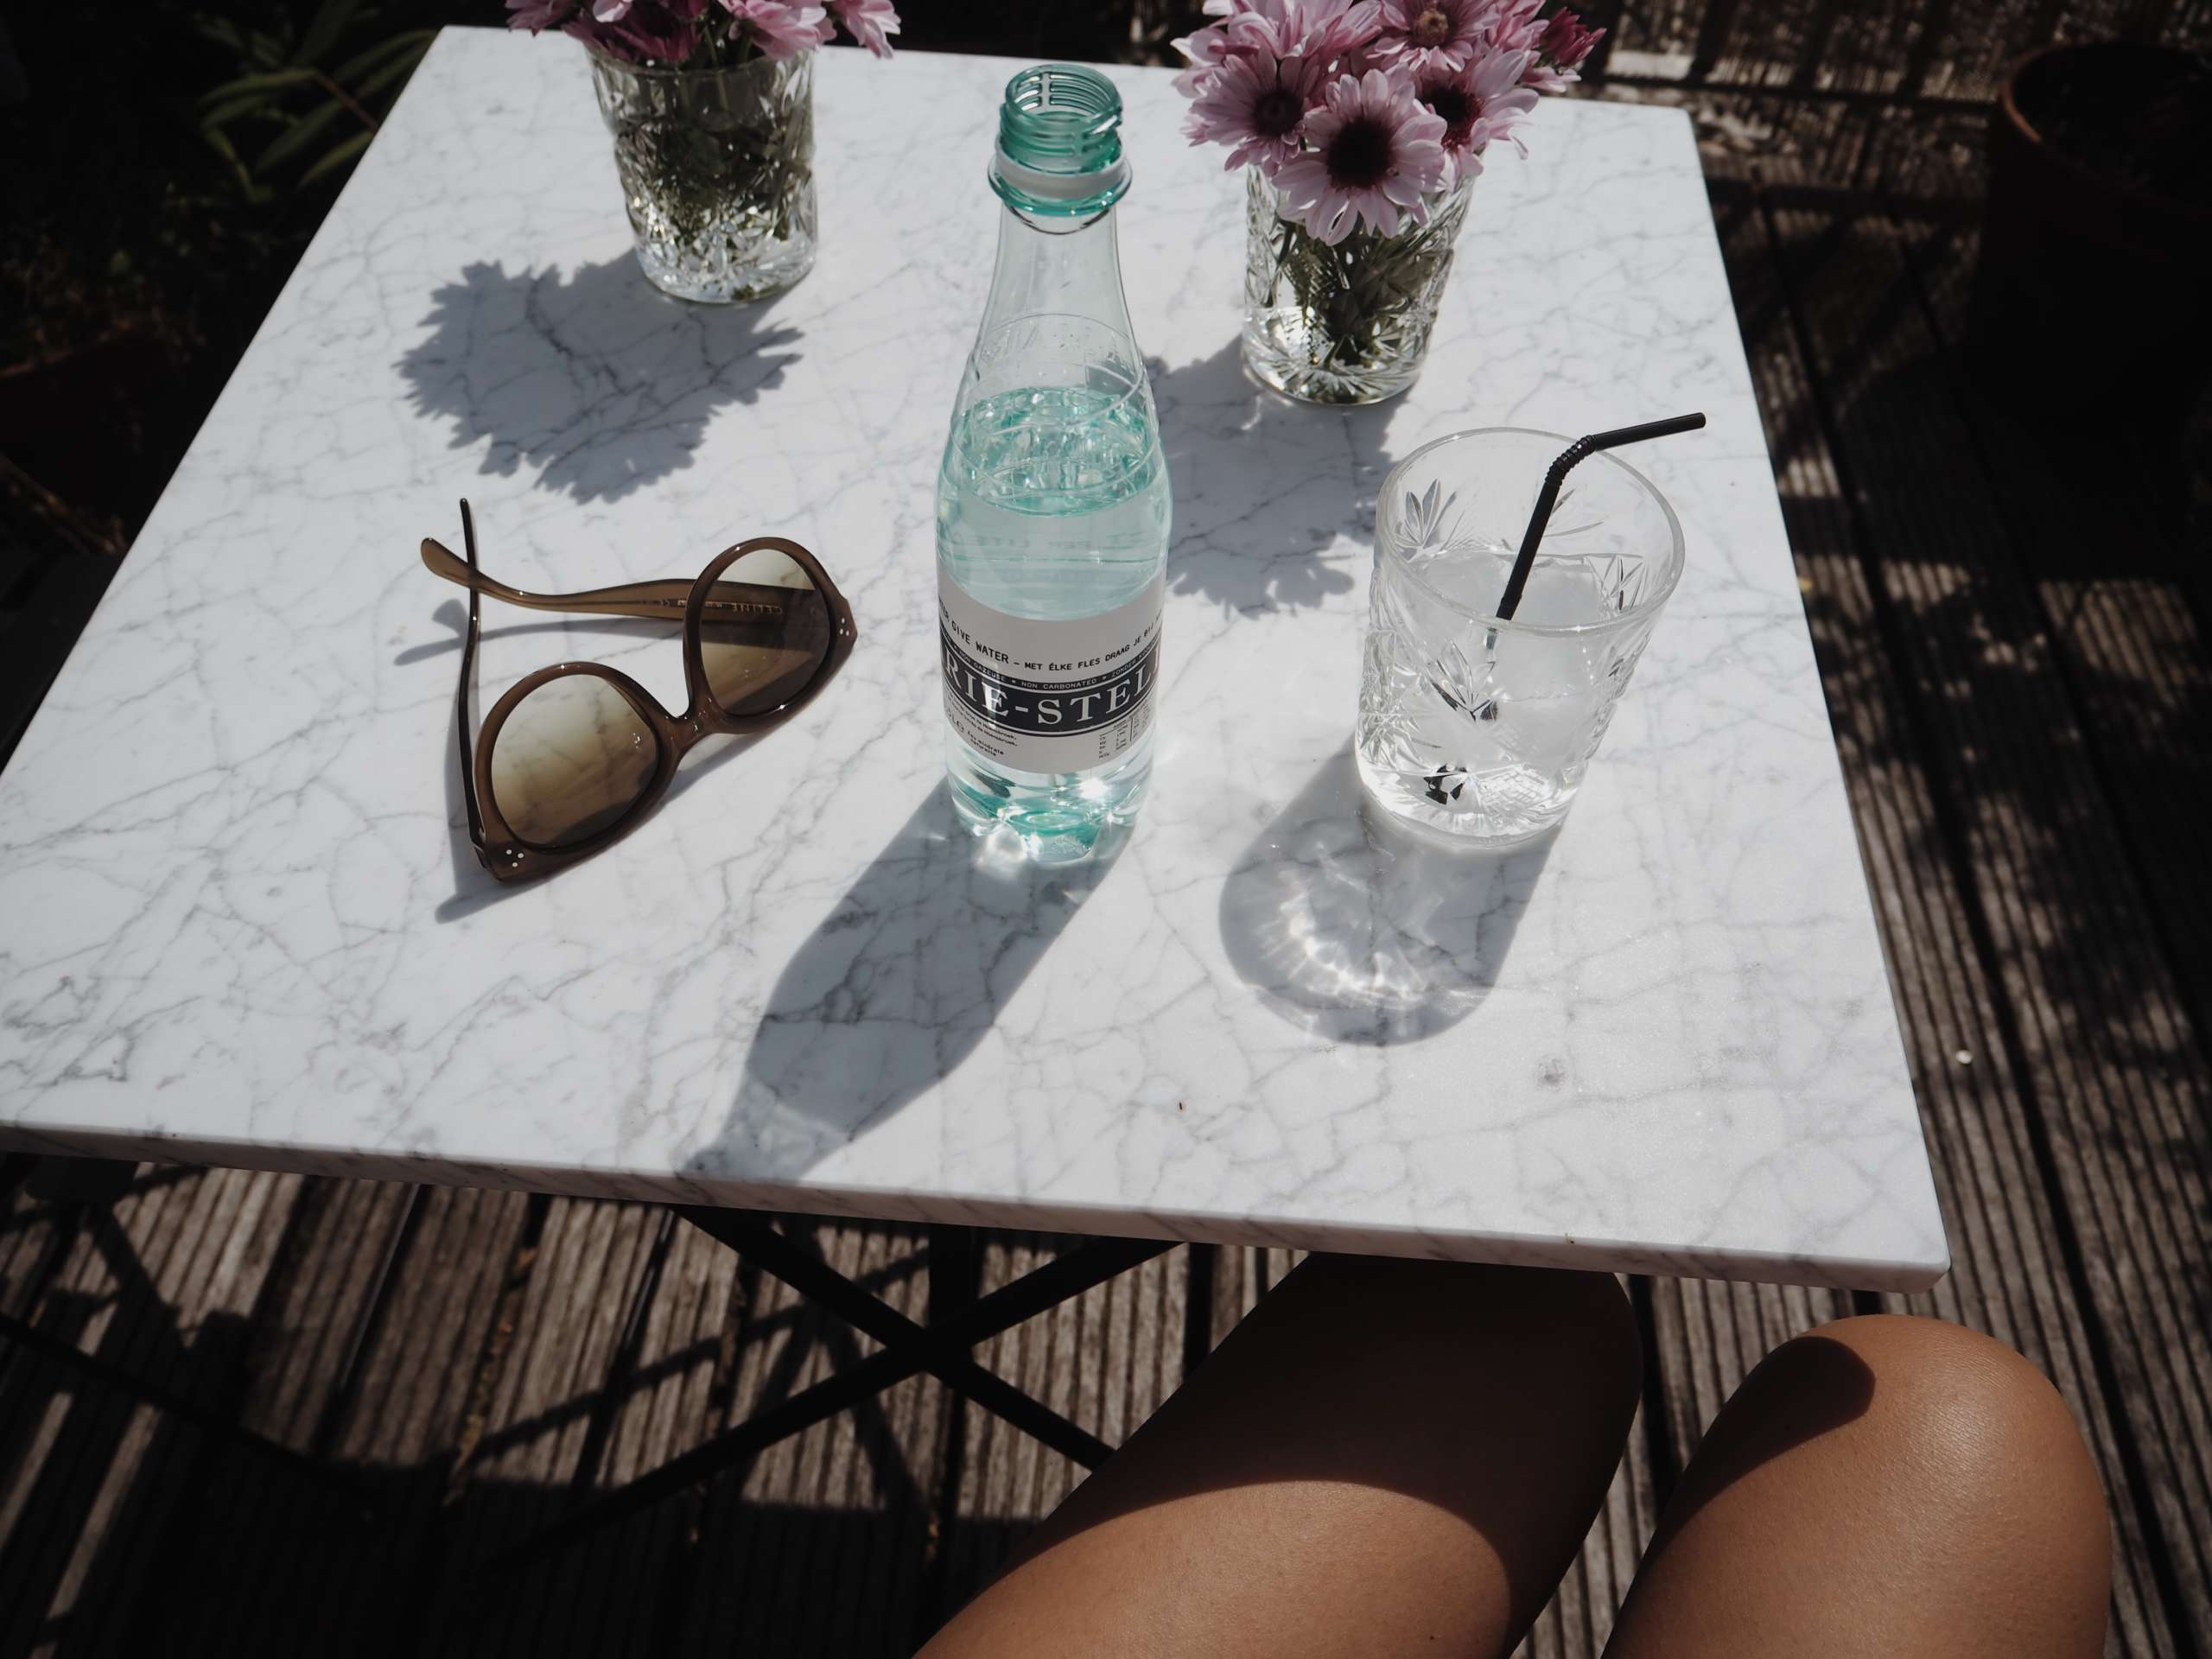 marie-stella-maris-skin-care-amsterdam-water-beauty-review-celine-sunglasses